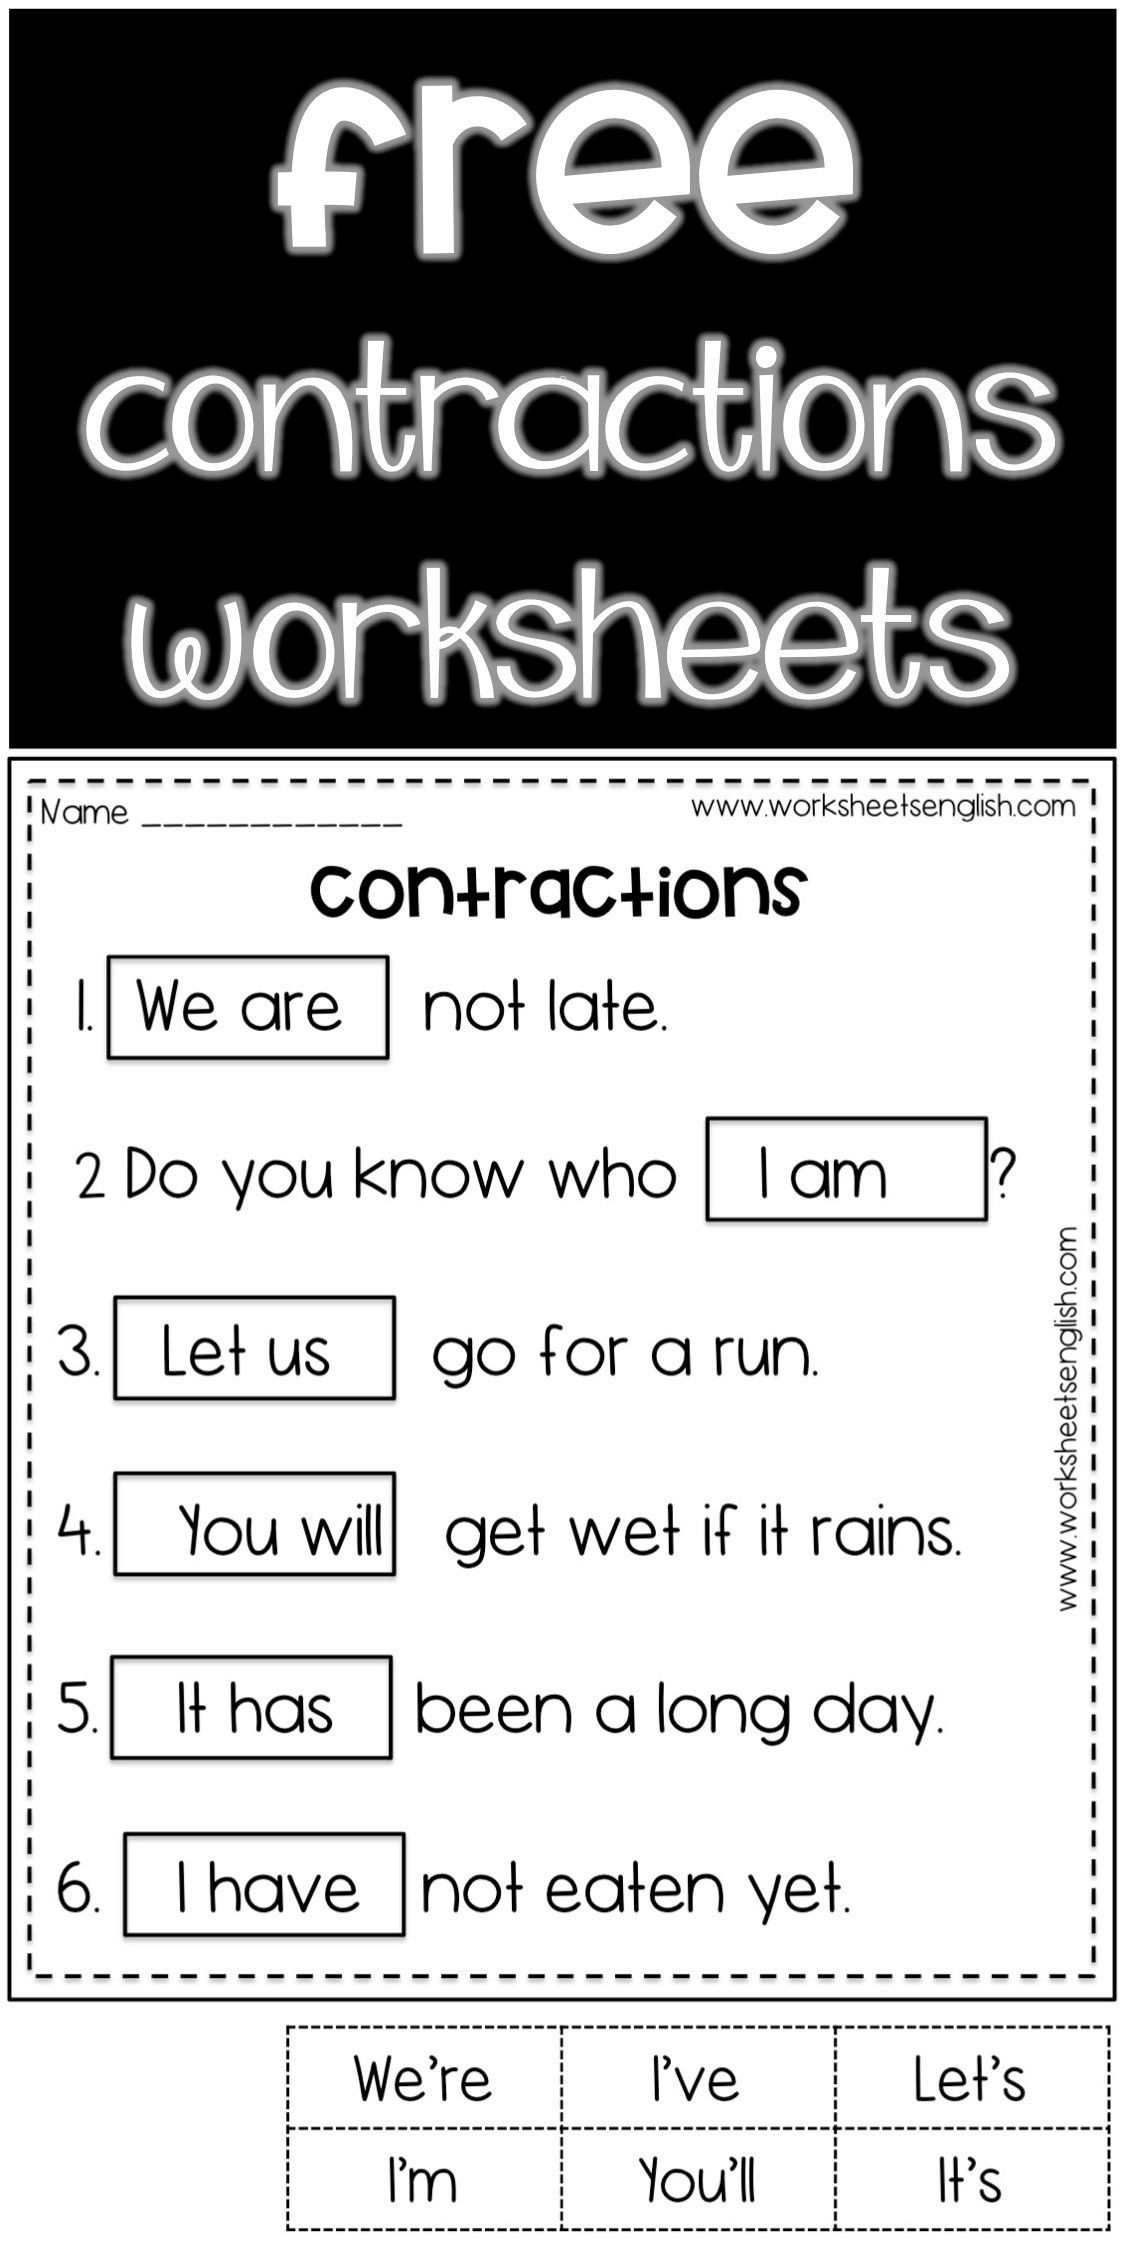 medium resolution of contractions in english FREE www.worksheetsenglish.com in 2021   Contraction  worksheet